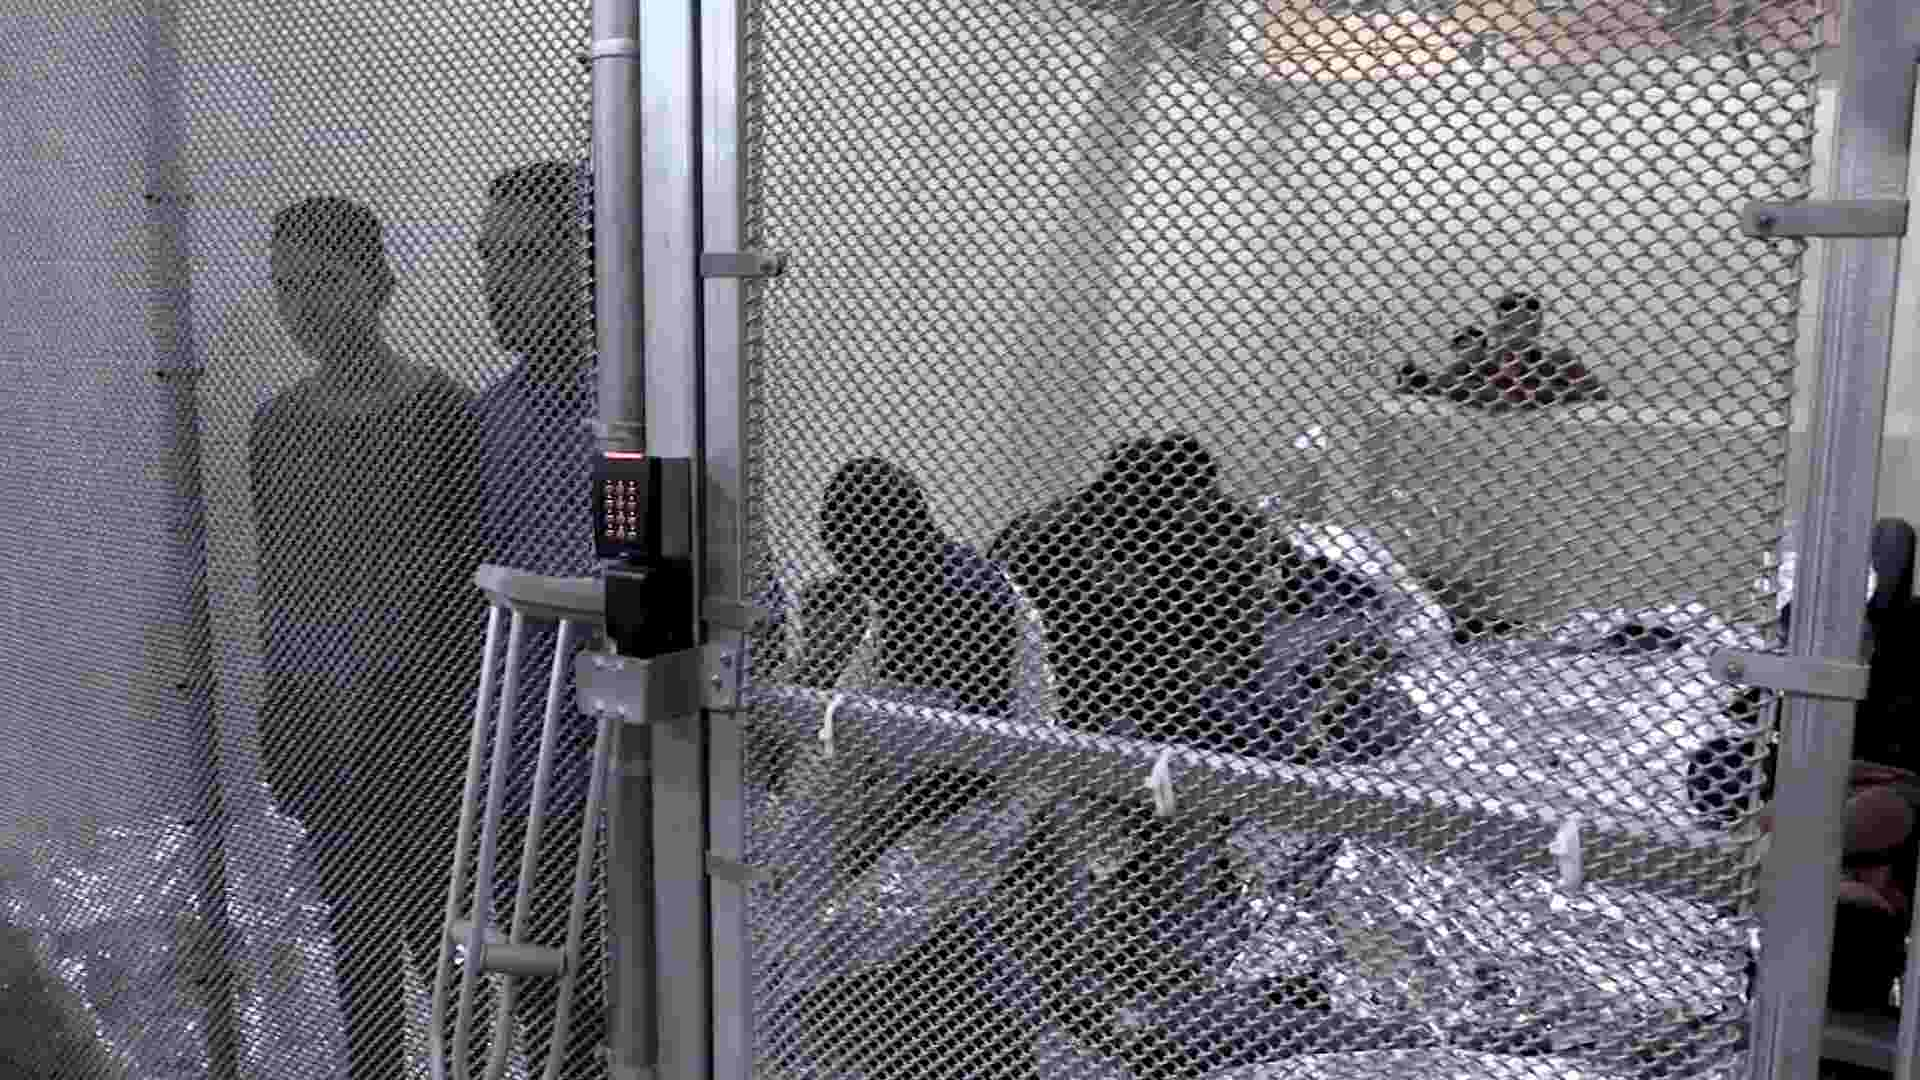 Teen describes smelly, crowded conditions for detained immigrant children